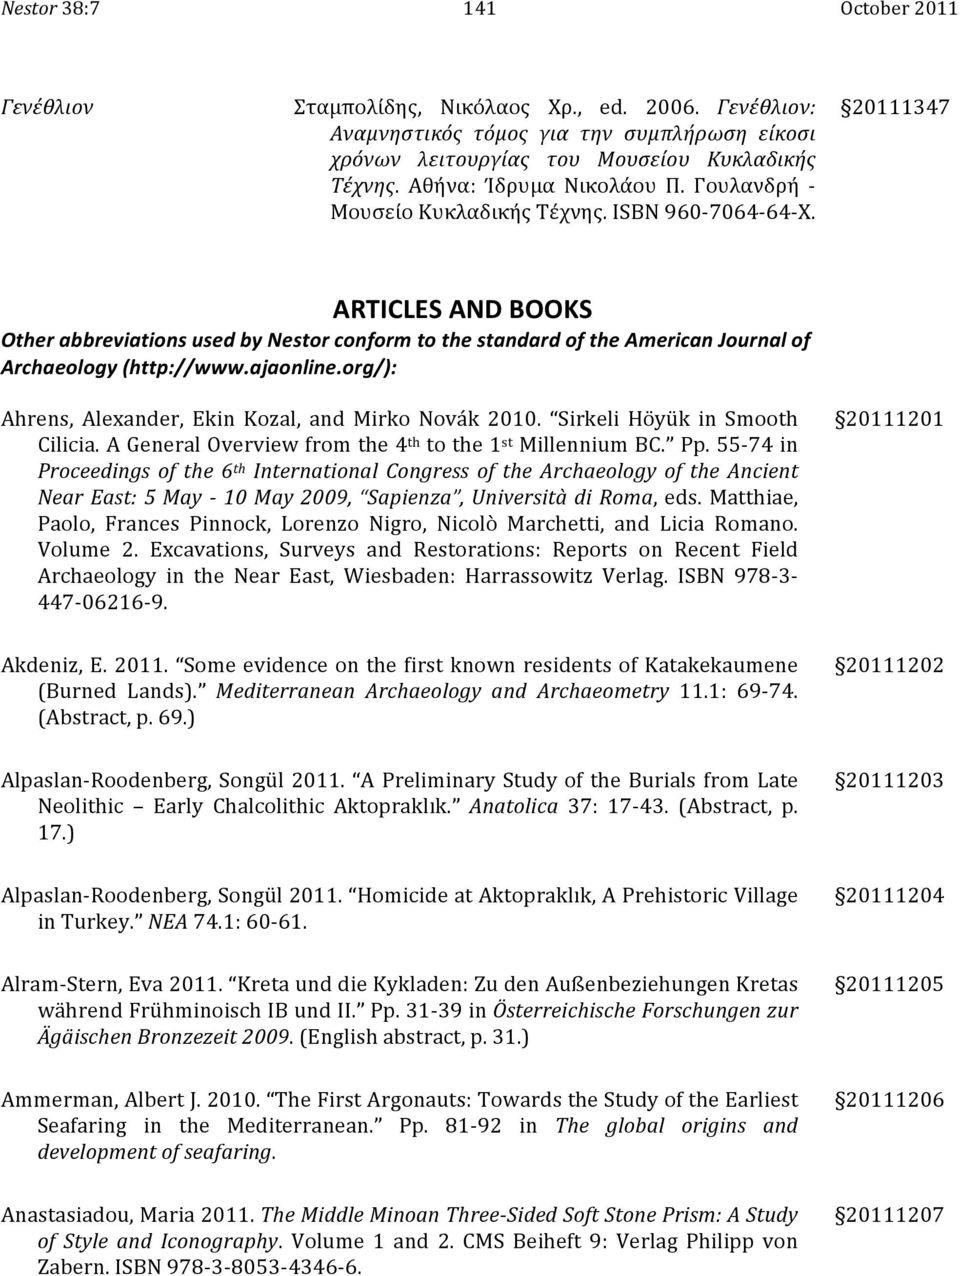 20111347 ARTICLES AND BOOKS Other abbreviations used by Nestor conform to the standard of the American Journal of Archaeology (http://www.ajaonline.